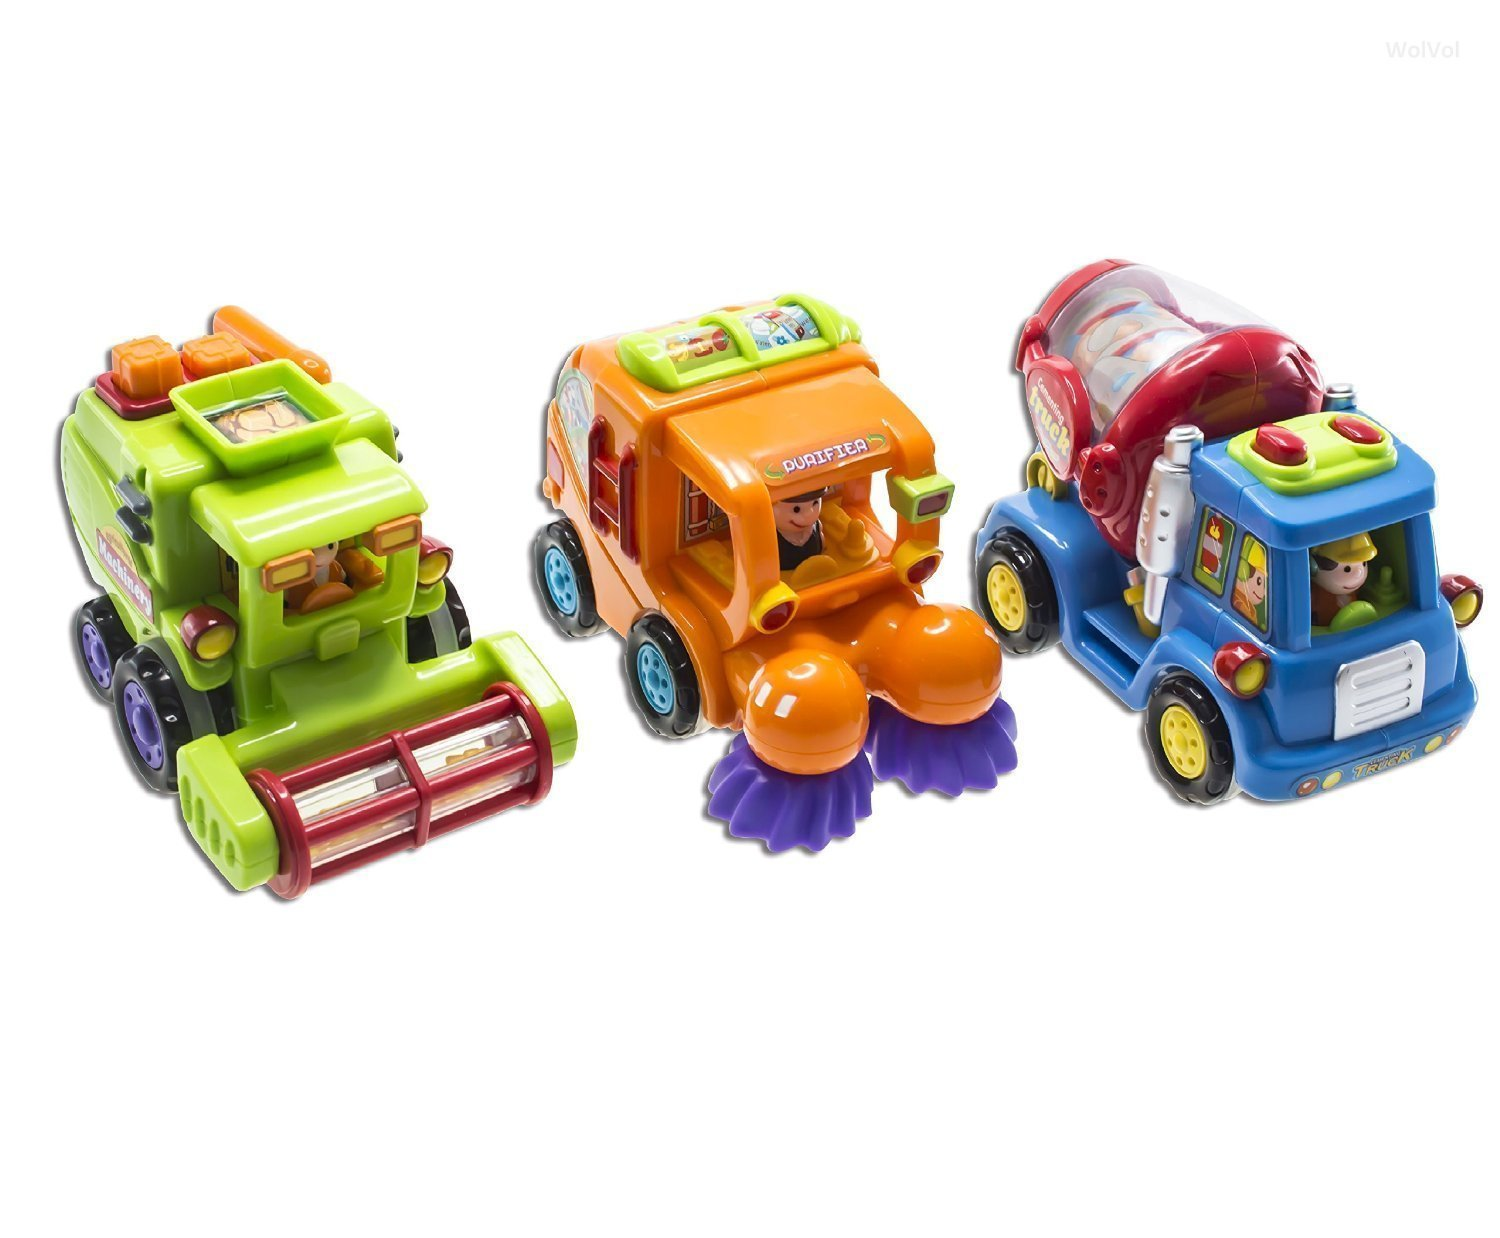 WolVol (Set of 3) Push and Go Friction Powered Car Toys for Boys - Street Sweeper Truck, Cement Mixer Truck, Harvester Toy Truck (Cars Have Automatic Functions) by WolVol (Image #6)